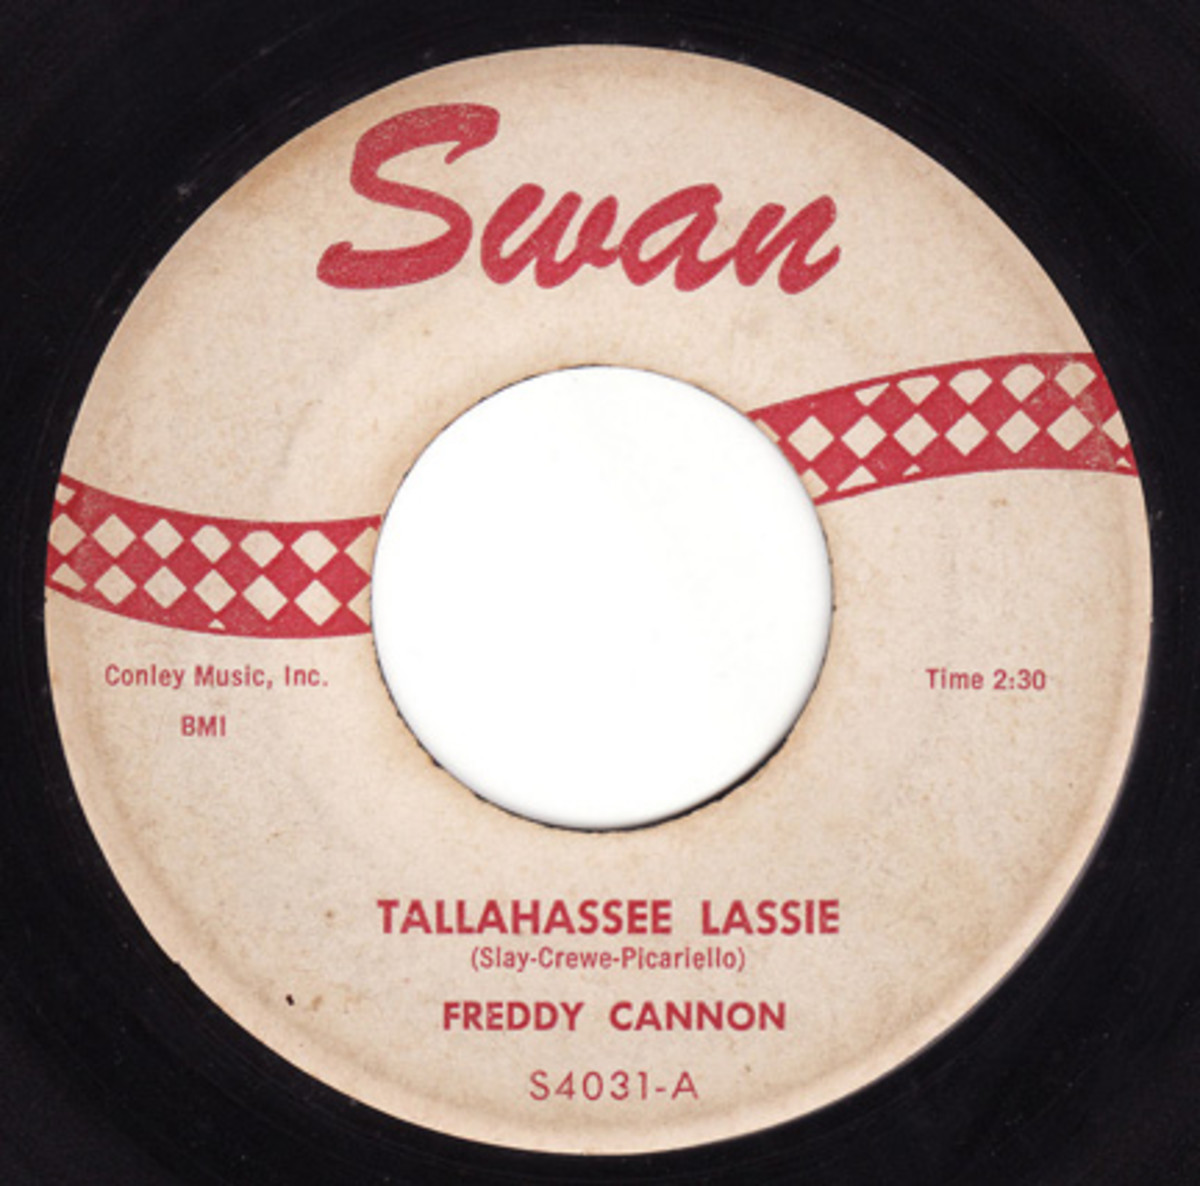 Freddy Cannon Tallahassee Lassie on Swan